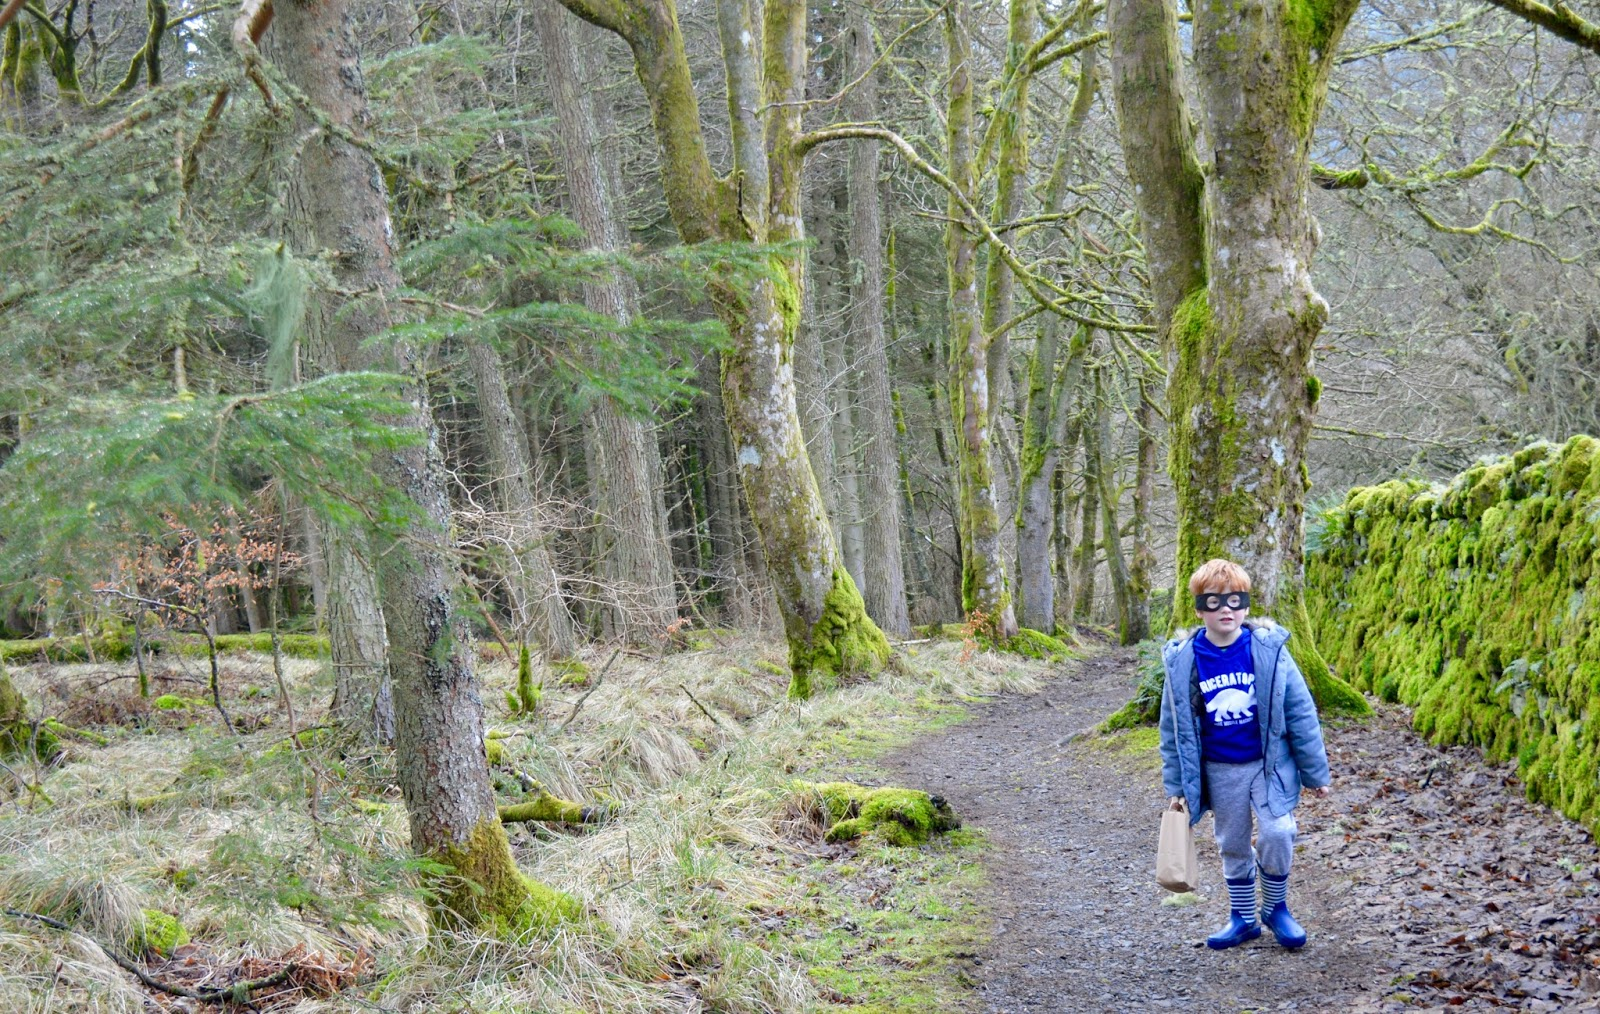 10 of the best family walks in North East England with a cafe and play park nearby - Kielder Forest